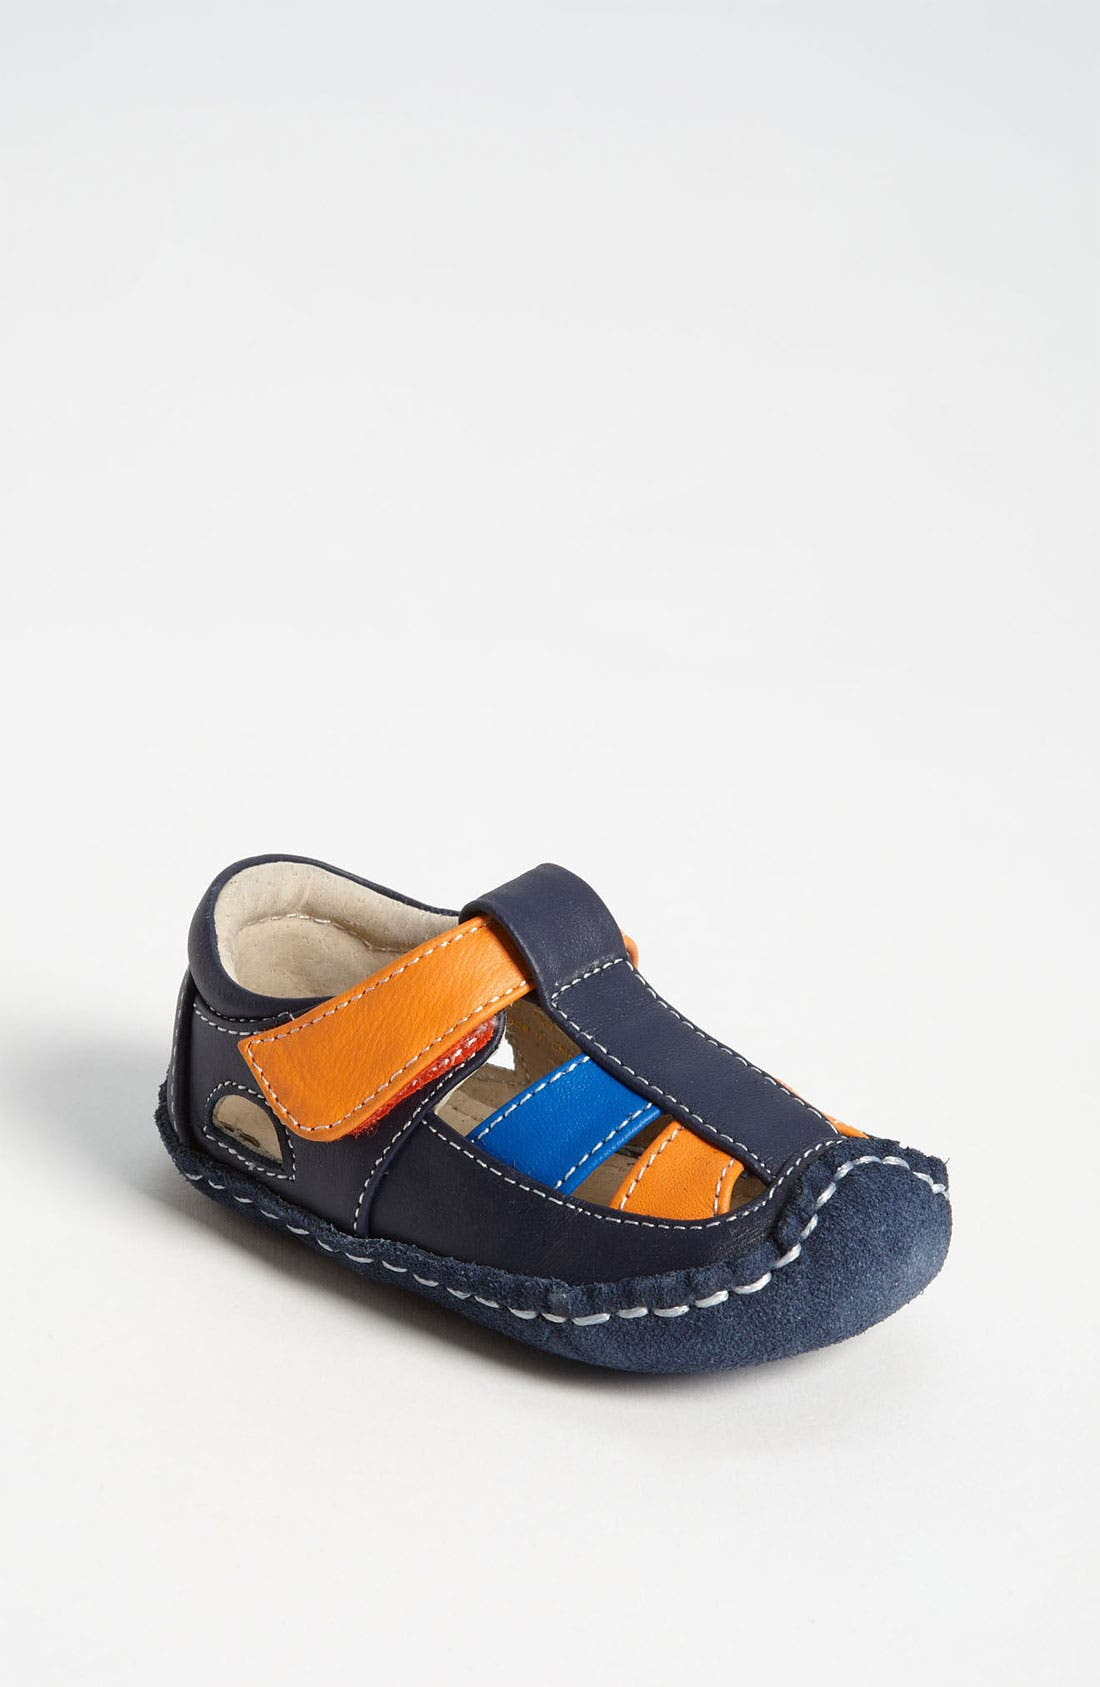 Alternate Image 1 Selected - See Kai Run 'Luke' Sandal (Baby & Walker)